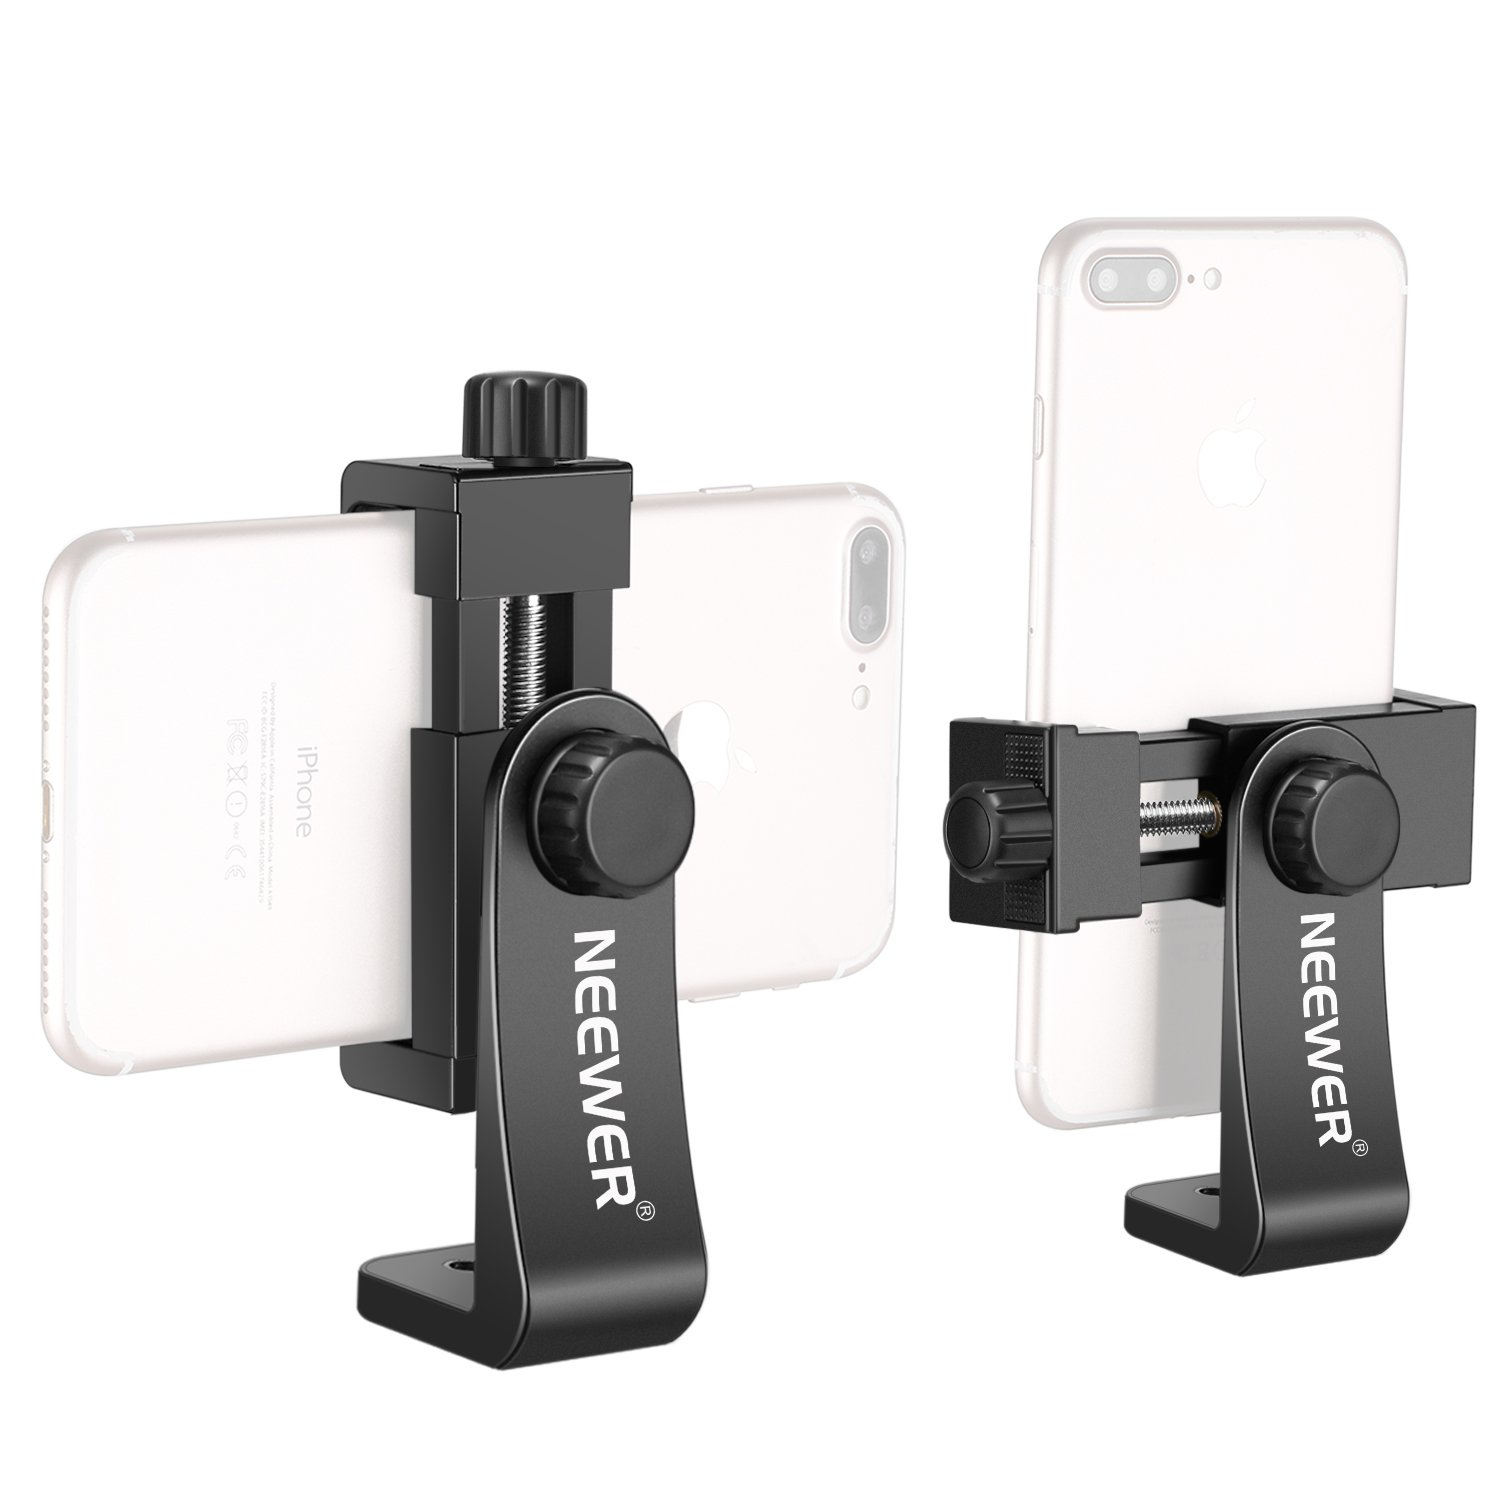 Neewer Smartphone Holder Vertical Bracket With 1/4 Inch Tripod Mount   Phone Clip Tripod Adapter For I Phone X 8 7 Plus 7 6 Plus, Samsung S8 S7 S6 And Other Phones Within 1.9 3.9 Inches Width (Black) by Neewer